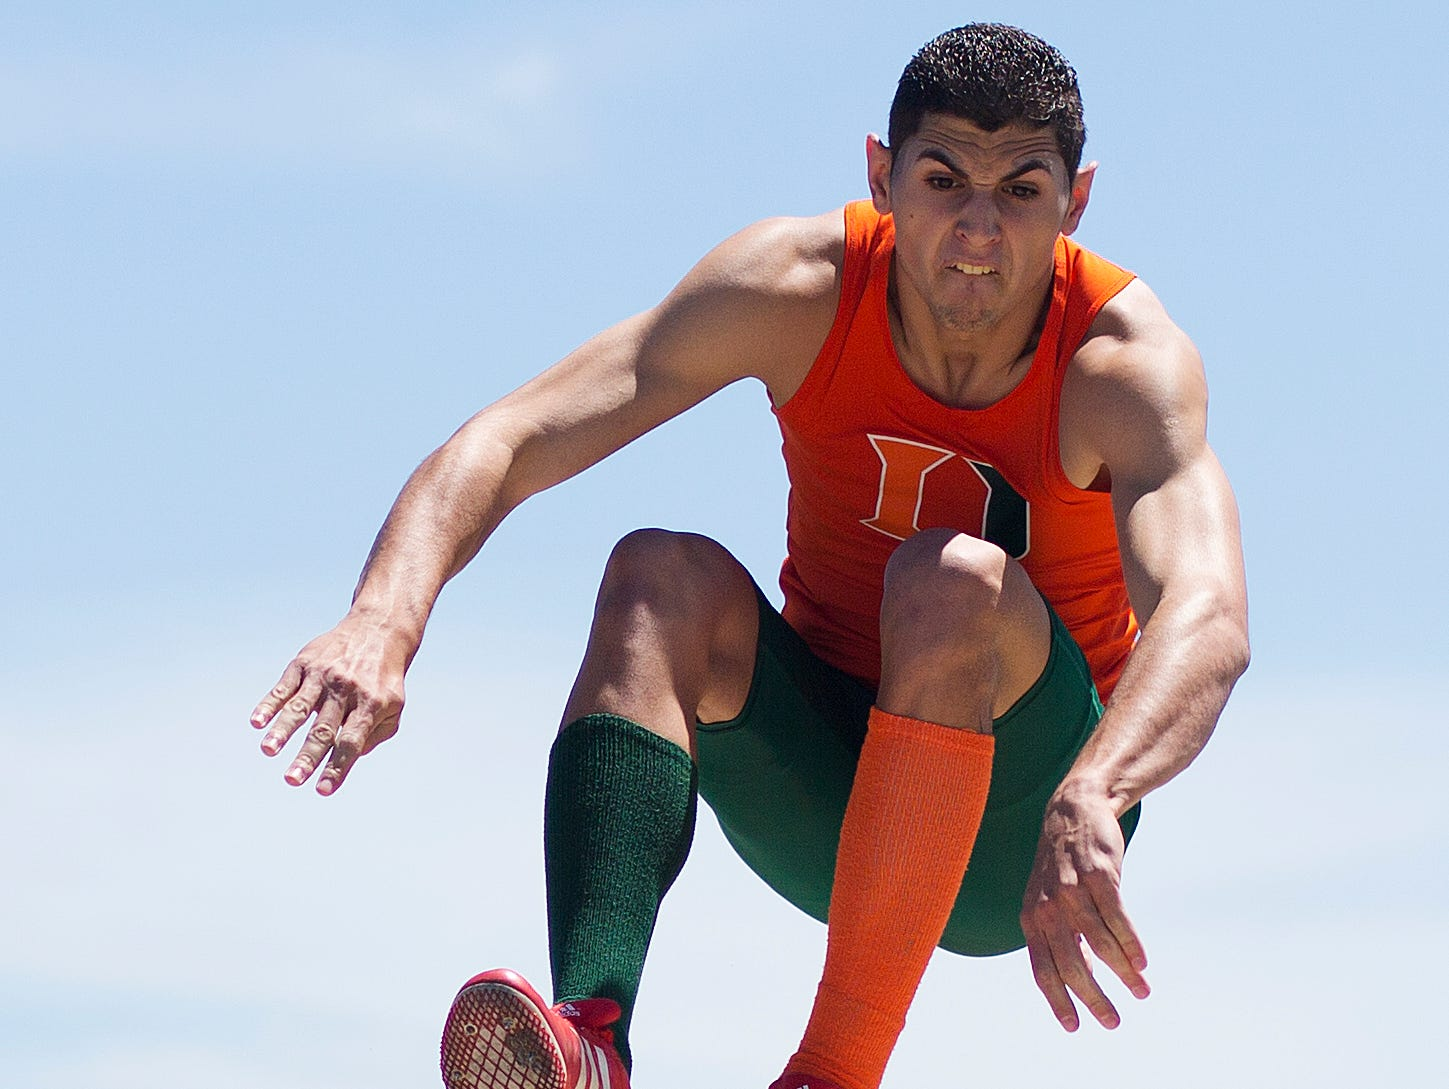 Dunbar High School's Rudy Alverez competes Saturday in the long jump of the LCAC Track and Field Championships at Ida Baker High School in Cape Coral.